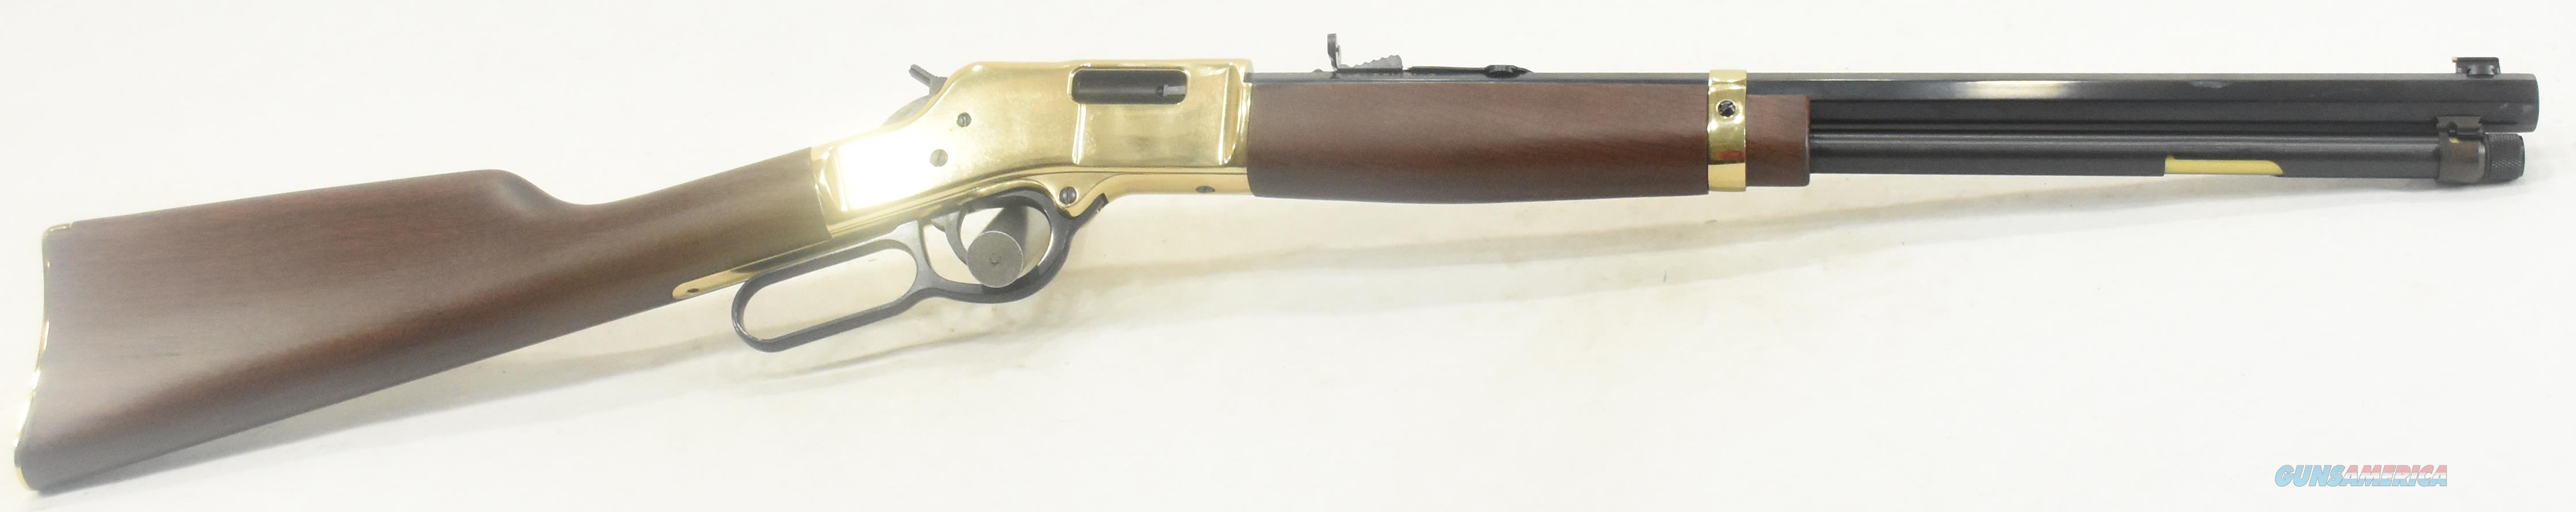 Big Boy Wood 357Mag 20In  H006M  Guns > Rifles > Henry Rifles - Replica